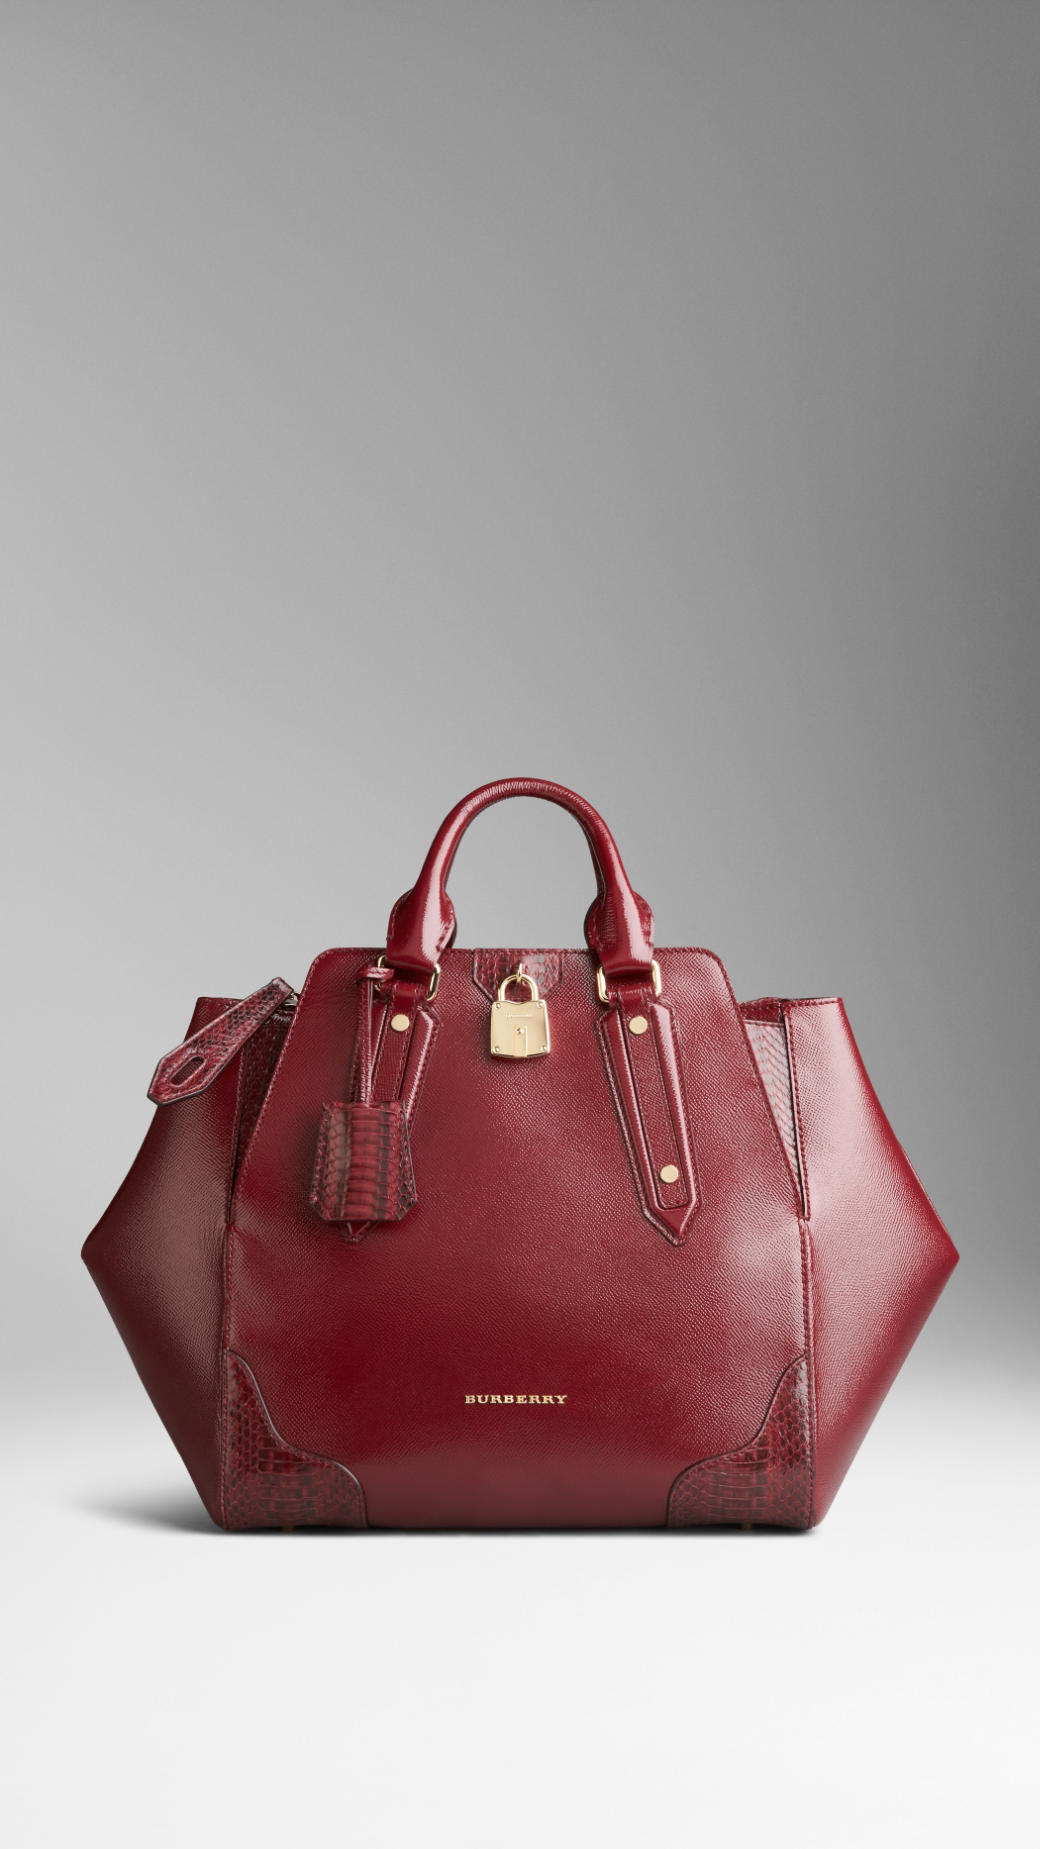 Lyst - Burberry Snakeskin Detail London Leather Tote Bag in Red cac1c230abfa2